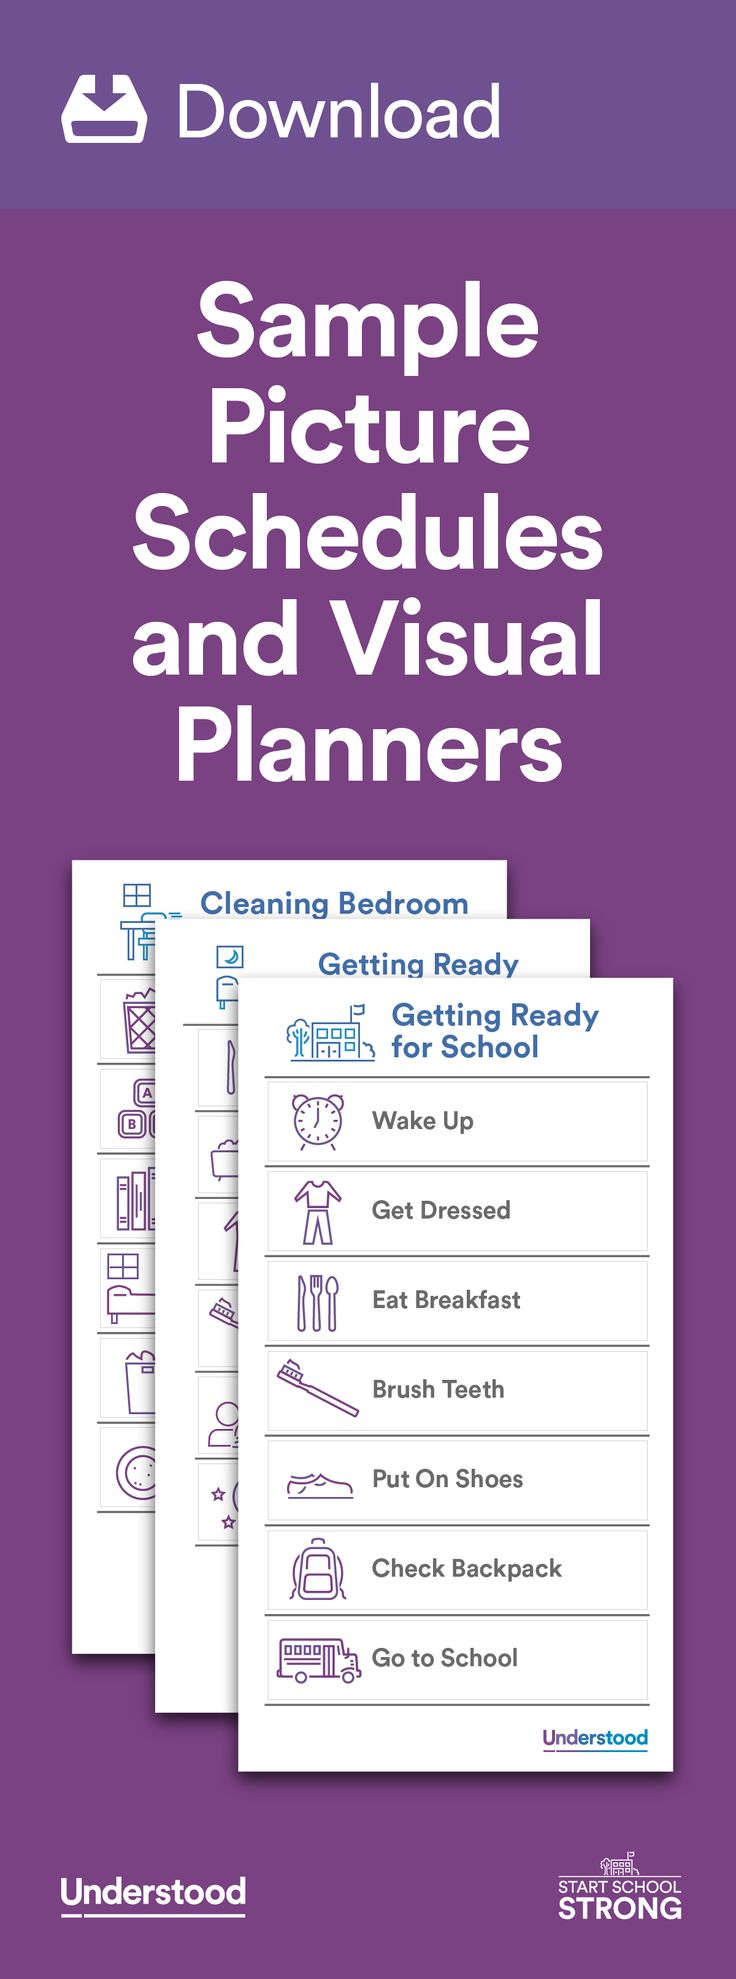 Picture schedules and visual planners can help kids who have trouble with organization stay on top of routines and feel more confident. For many kids, picture schedules are easier to follow and less overwhelming than written schedules.